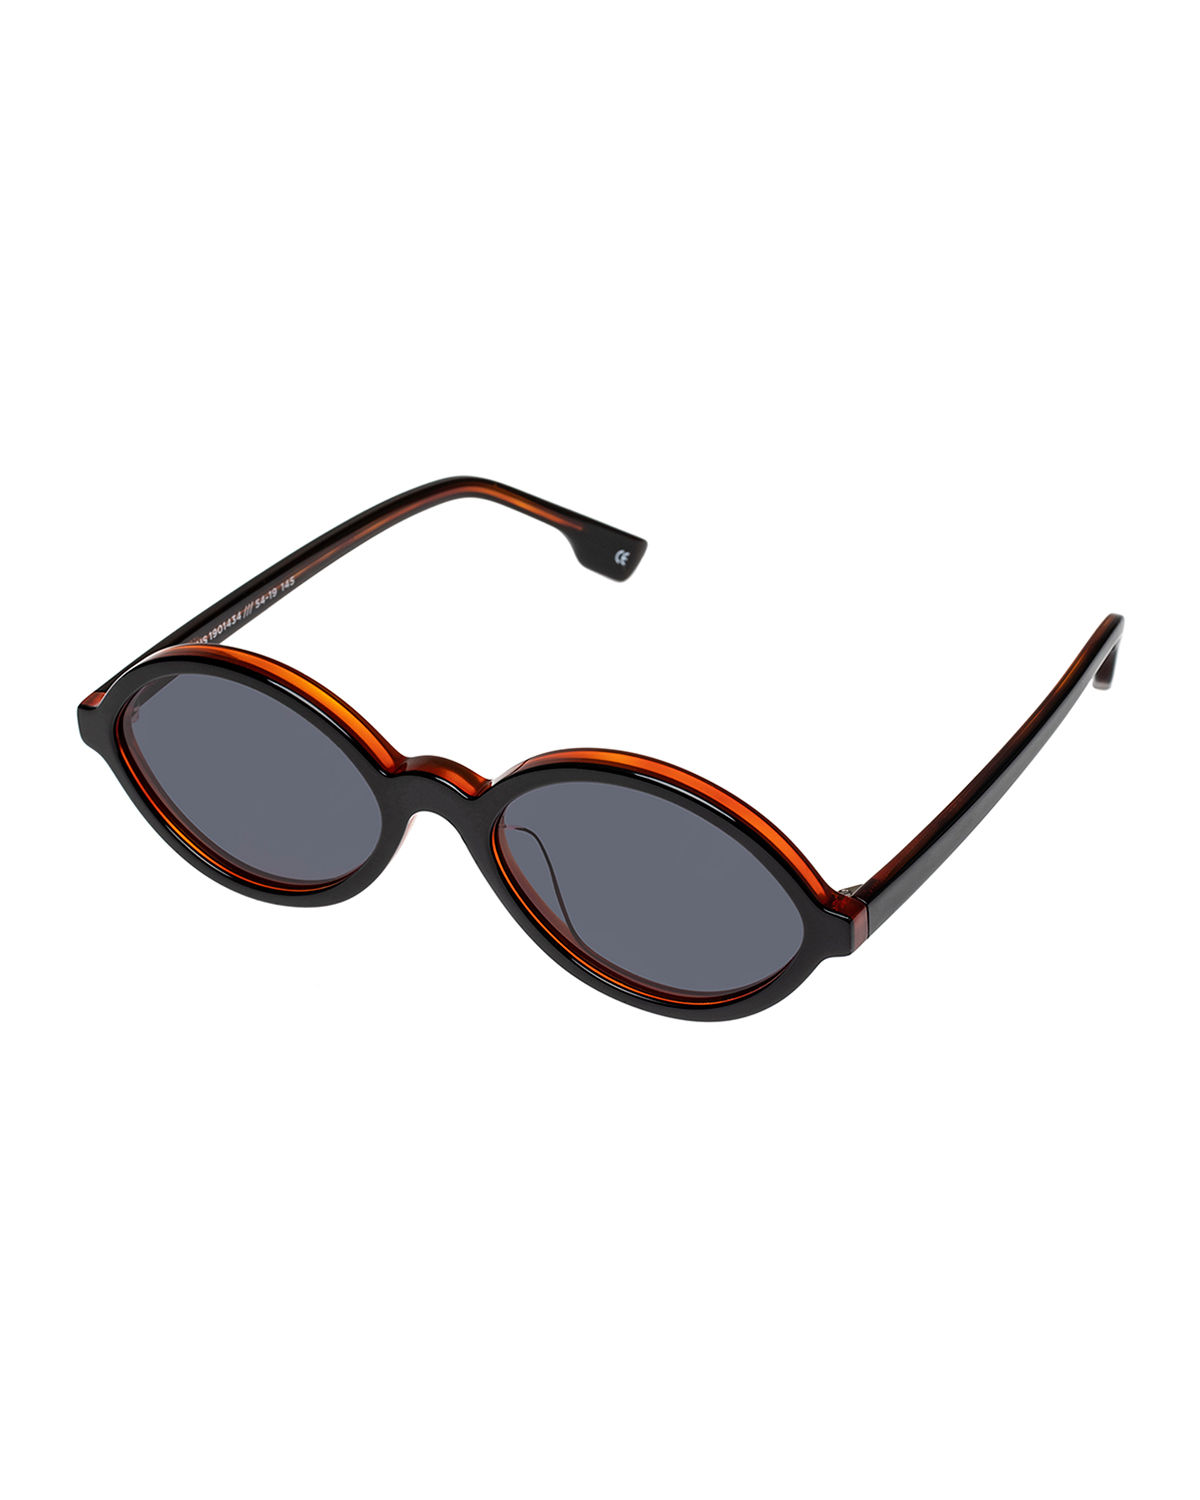 Le Specs Sunglasses IMPROMPTUS OVAL ACETATE SUNGLASSES